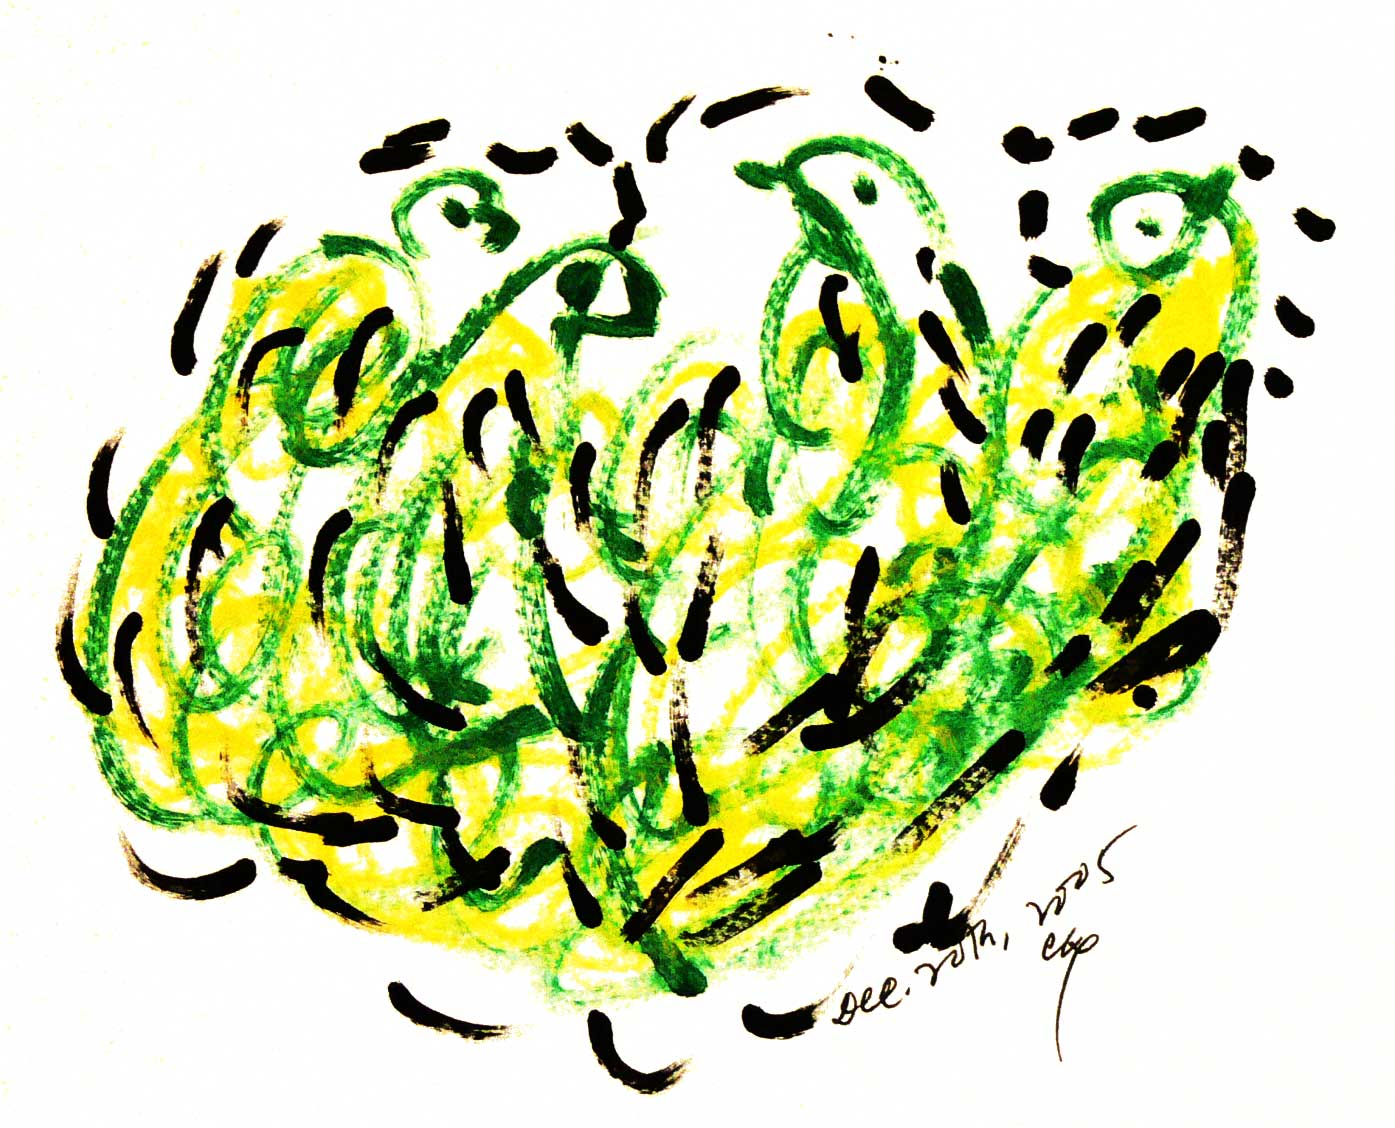 Bird-Drawing-20-12-2005-6-by-Sri-Chinmoy